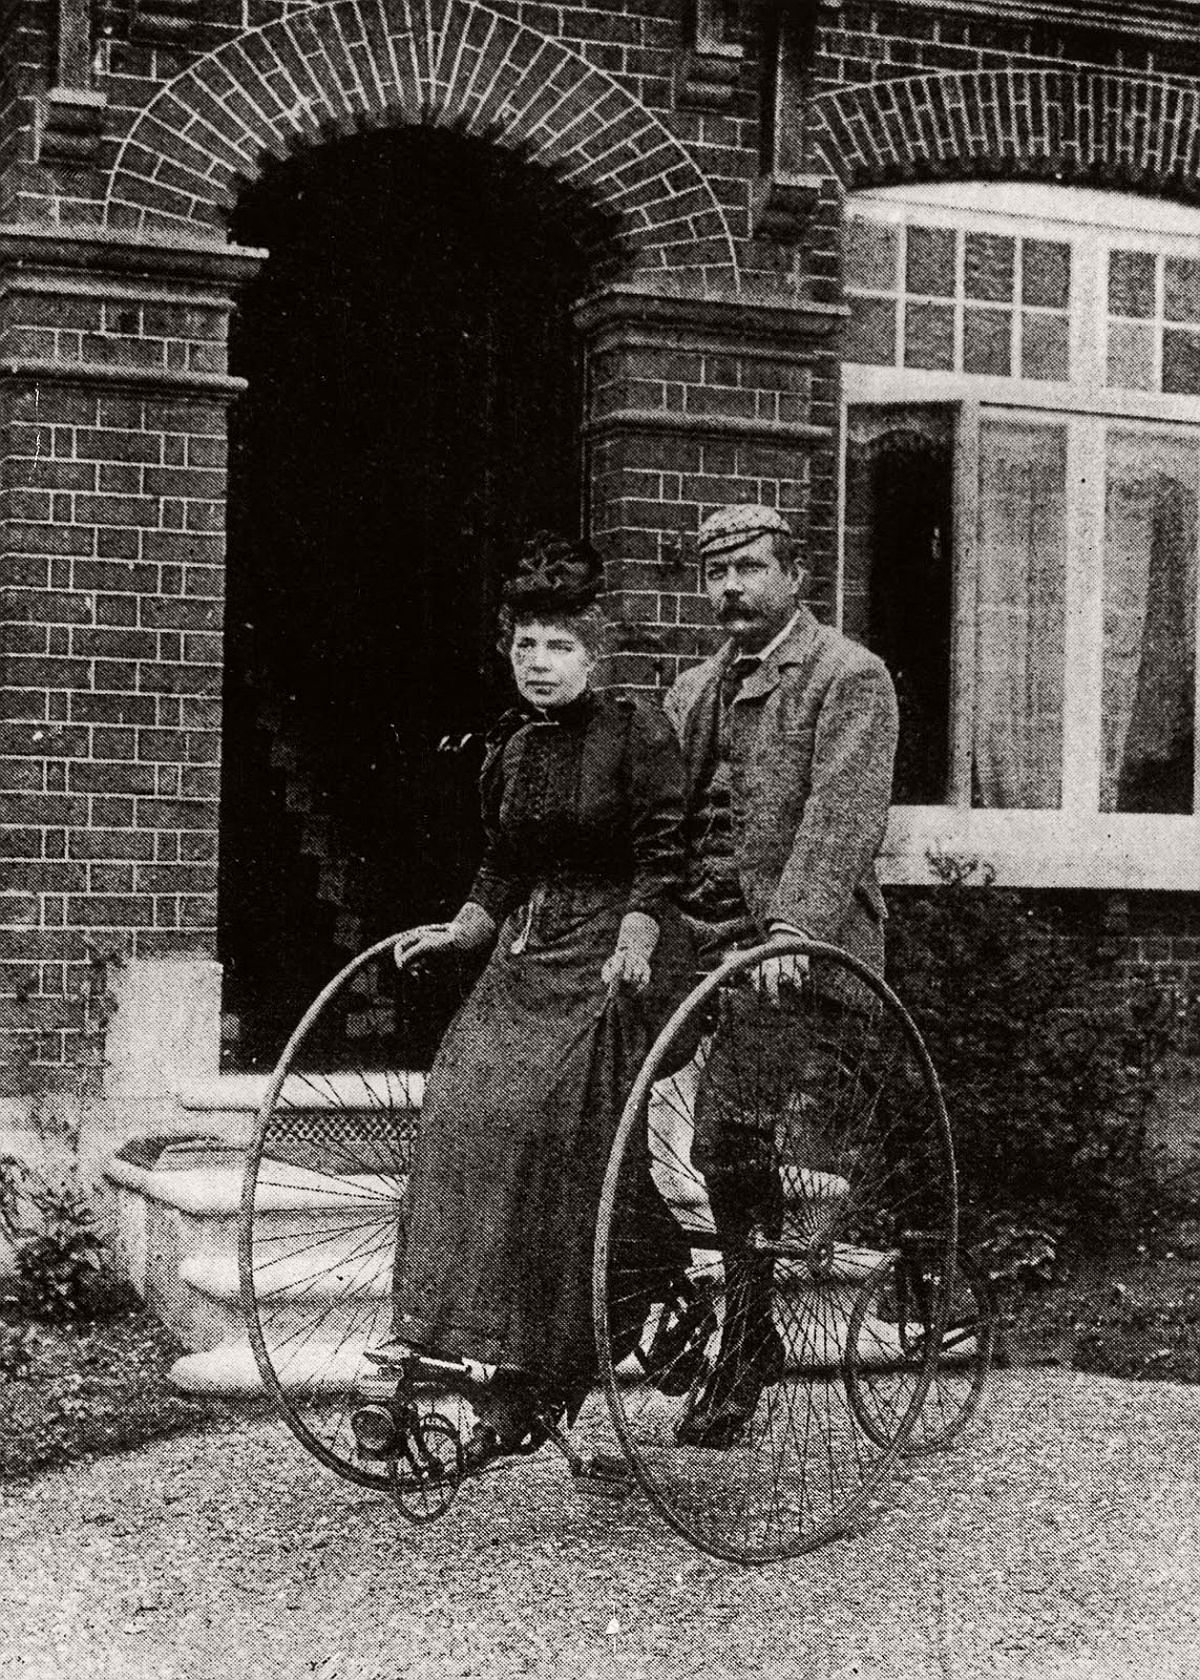 Sir Arthur Conan Doyle and his wife ride a tandem tricycle, 1895. (Getty Images)